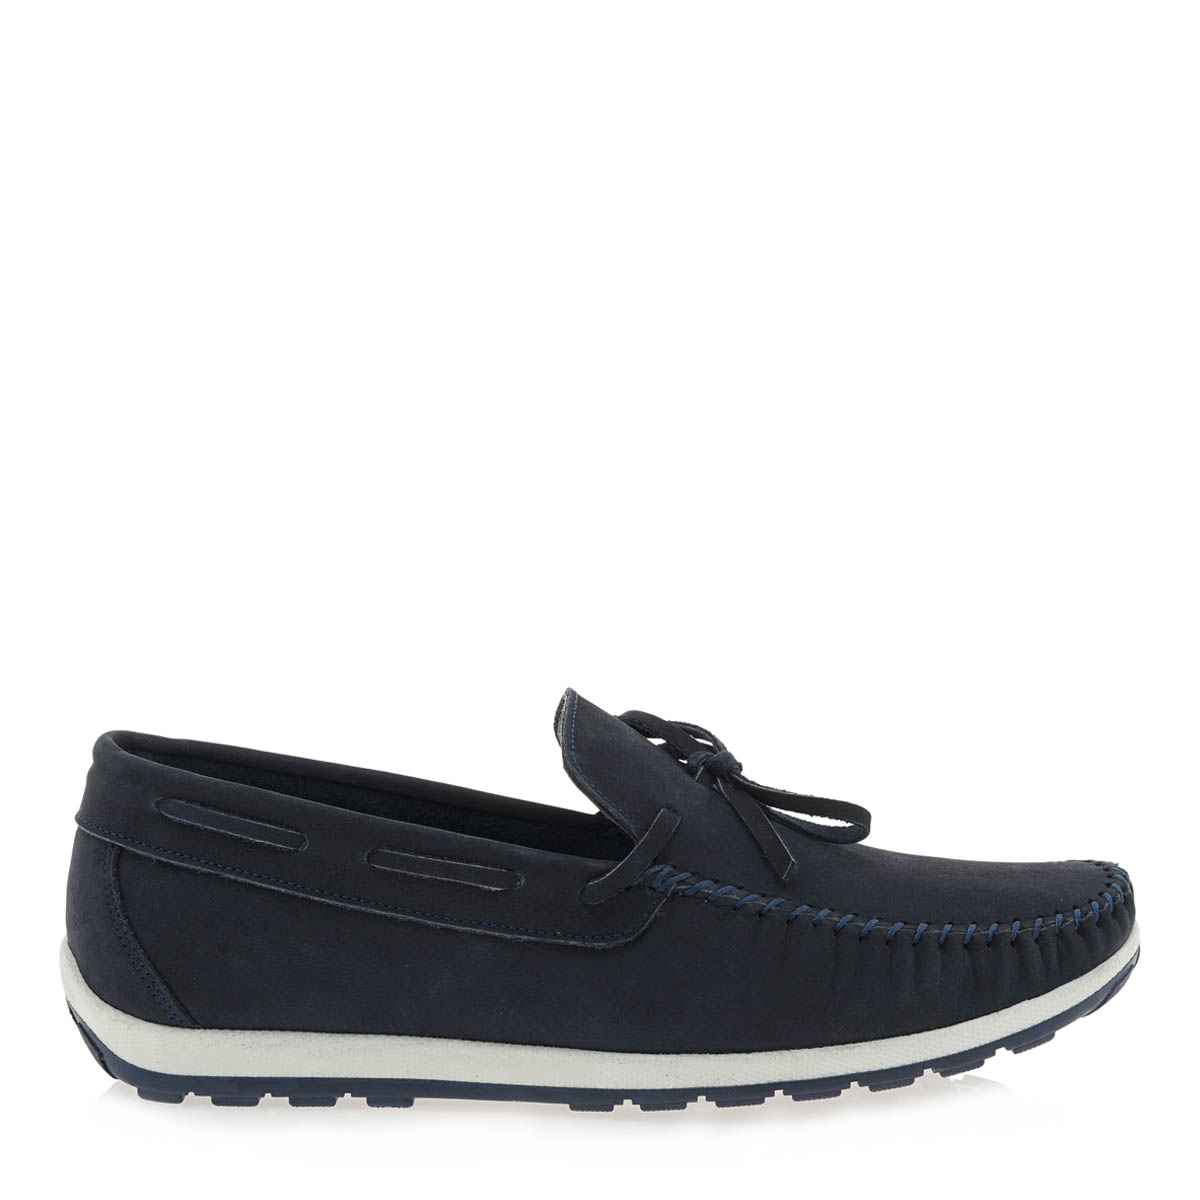 BOAT SHOES σχέδιο: I507U3022 outlet   ανδρικα   boat shoes